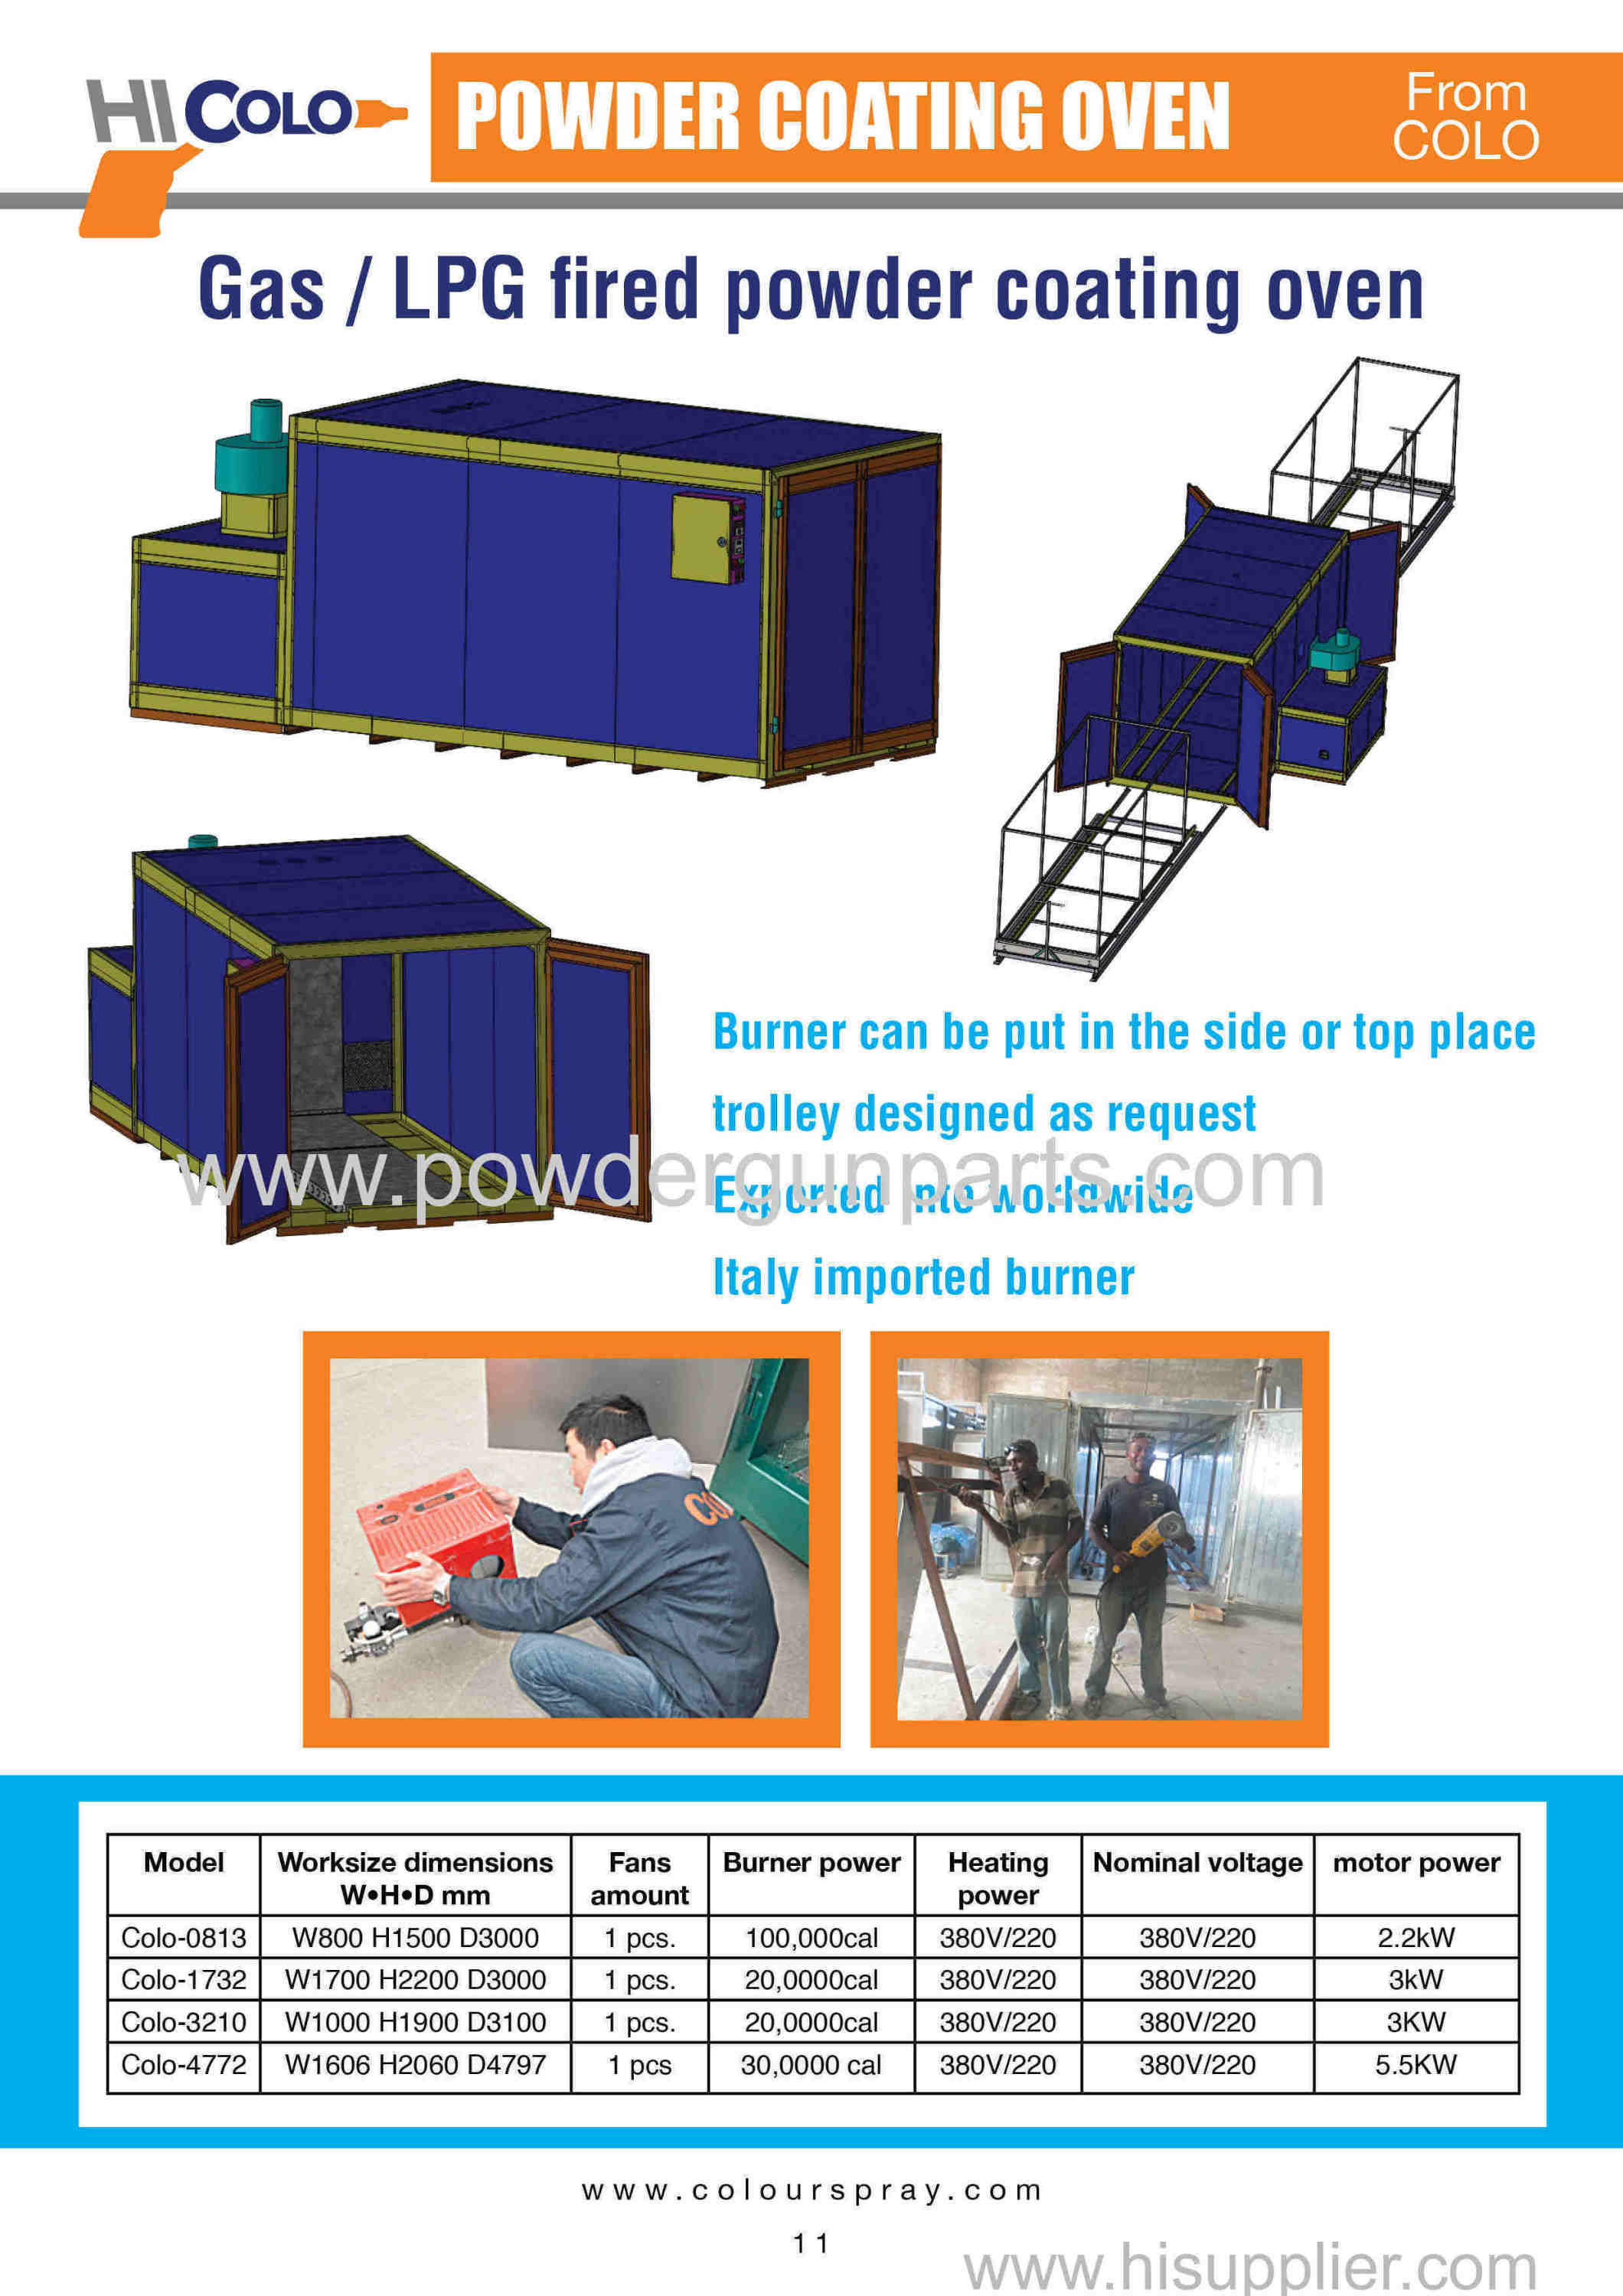 Cost saving Powder coating oven for painting powders